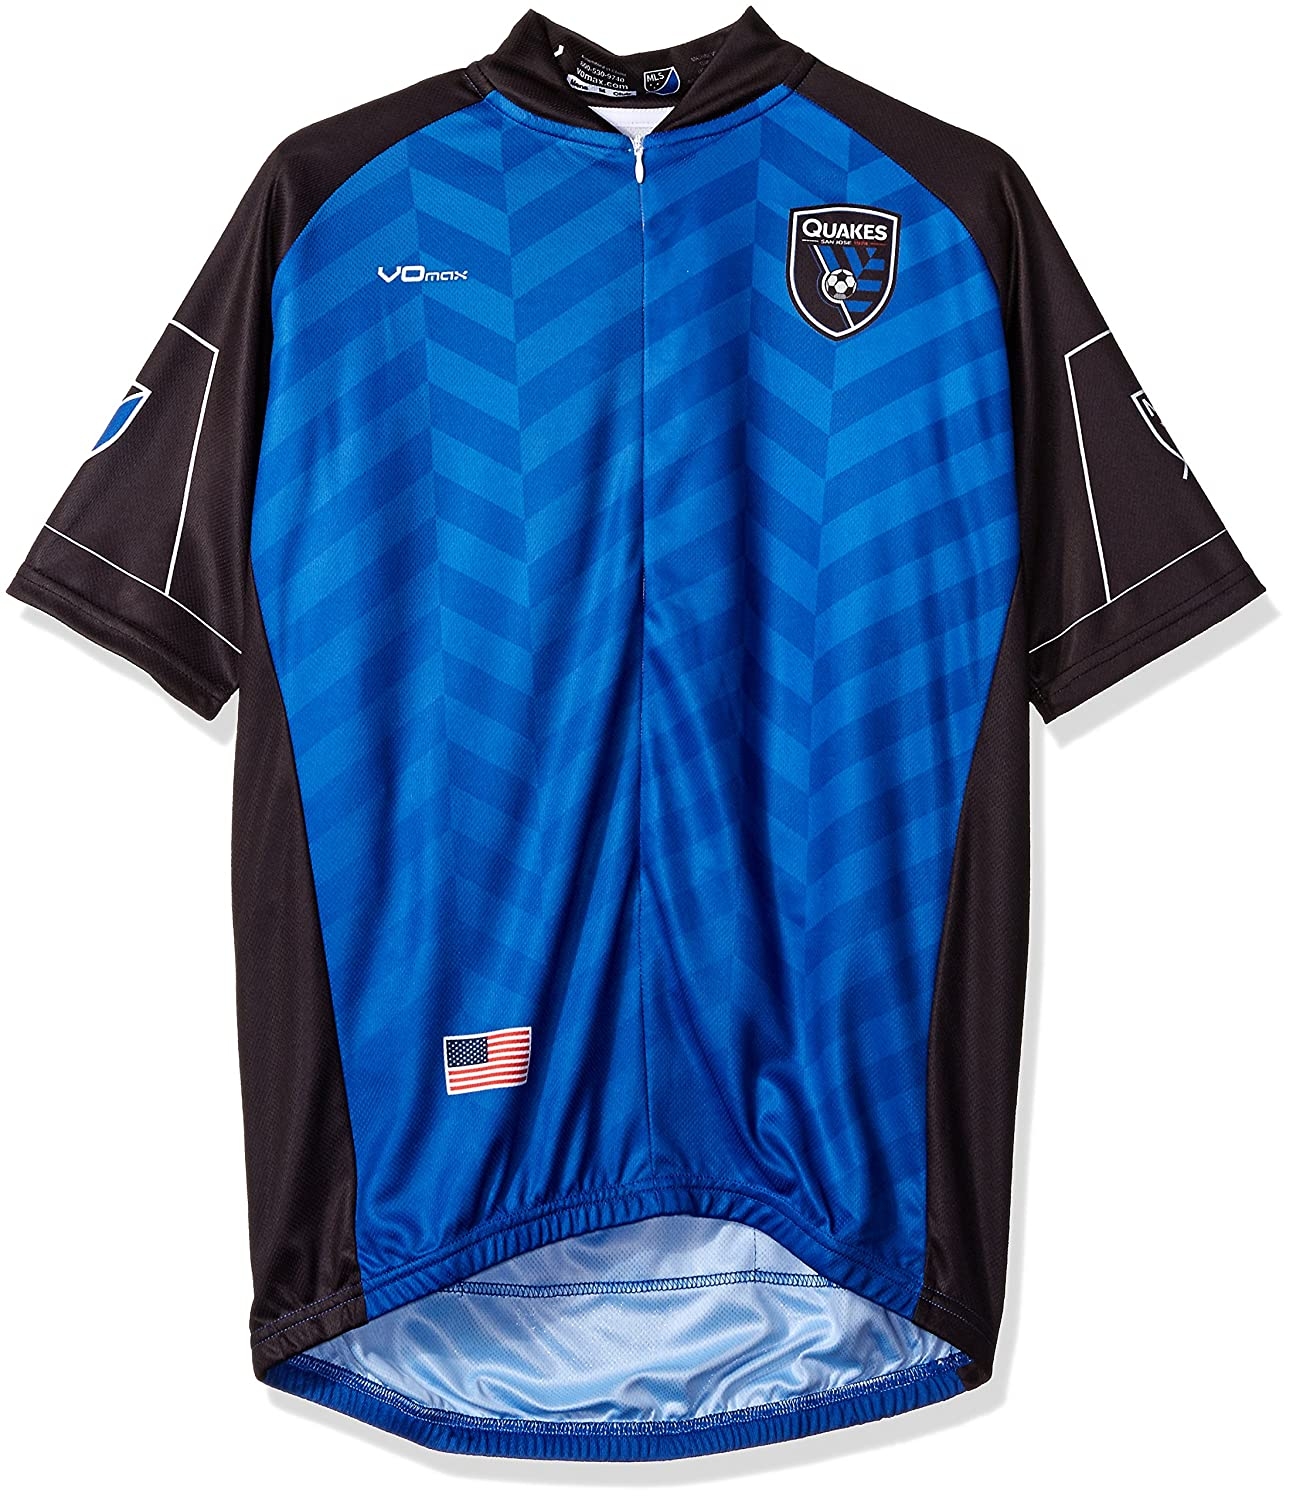 MLS Men 's Primary半袖サイクリングジャージー B017NPZ0QS Medium|ブルー|San Jose Earthquakes ブルー Medium